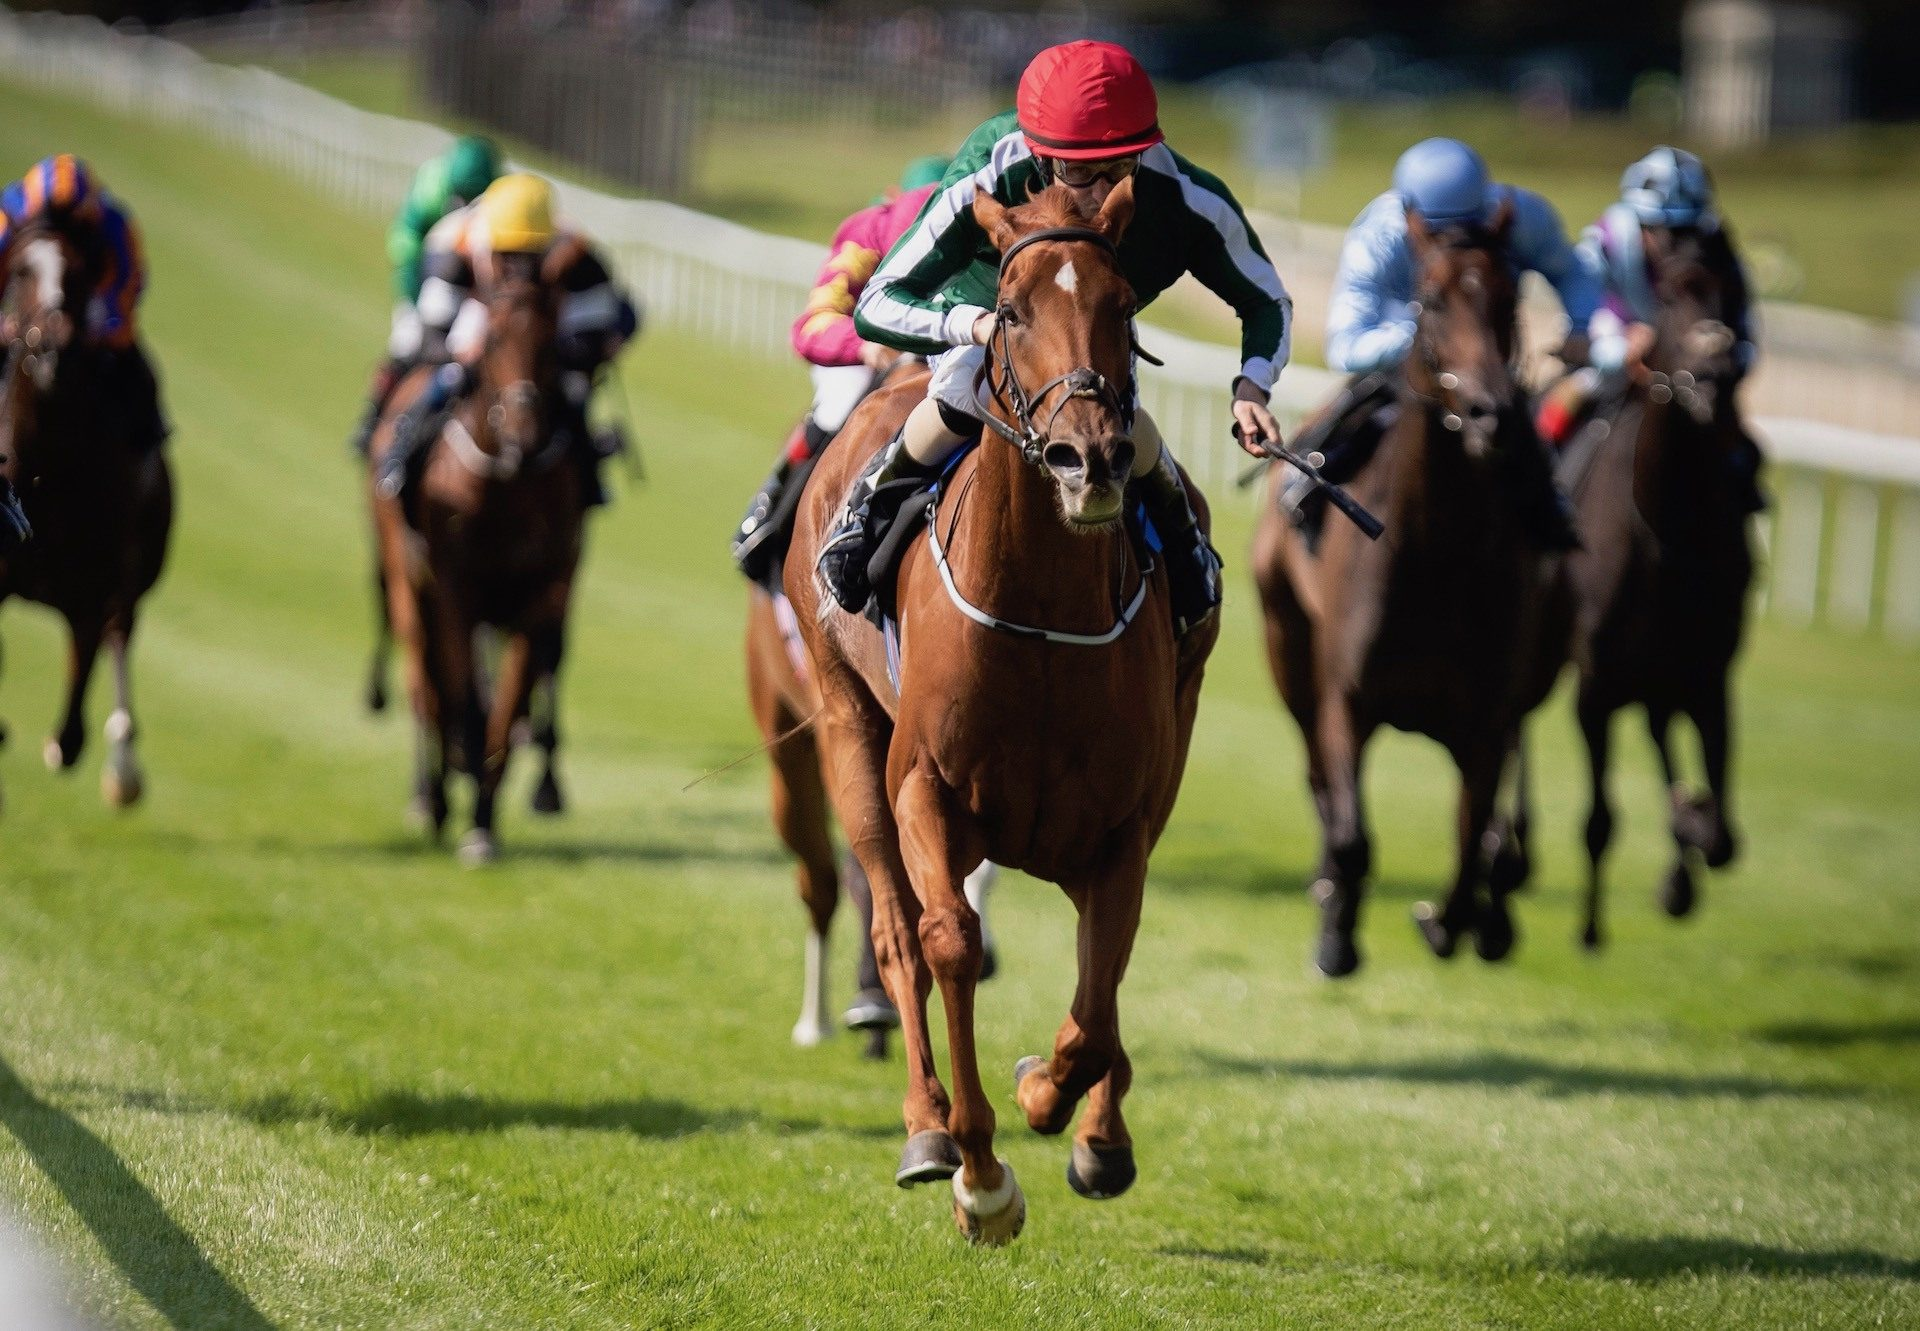 Cayenne Pepper (Australia) Wins The Gr.2 Blandford Stakes at the Curragh